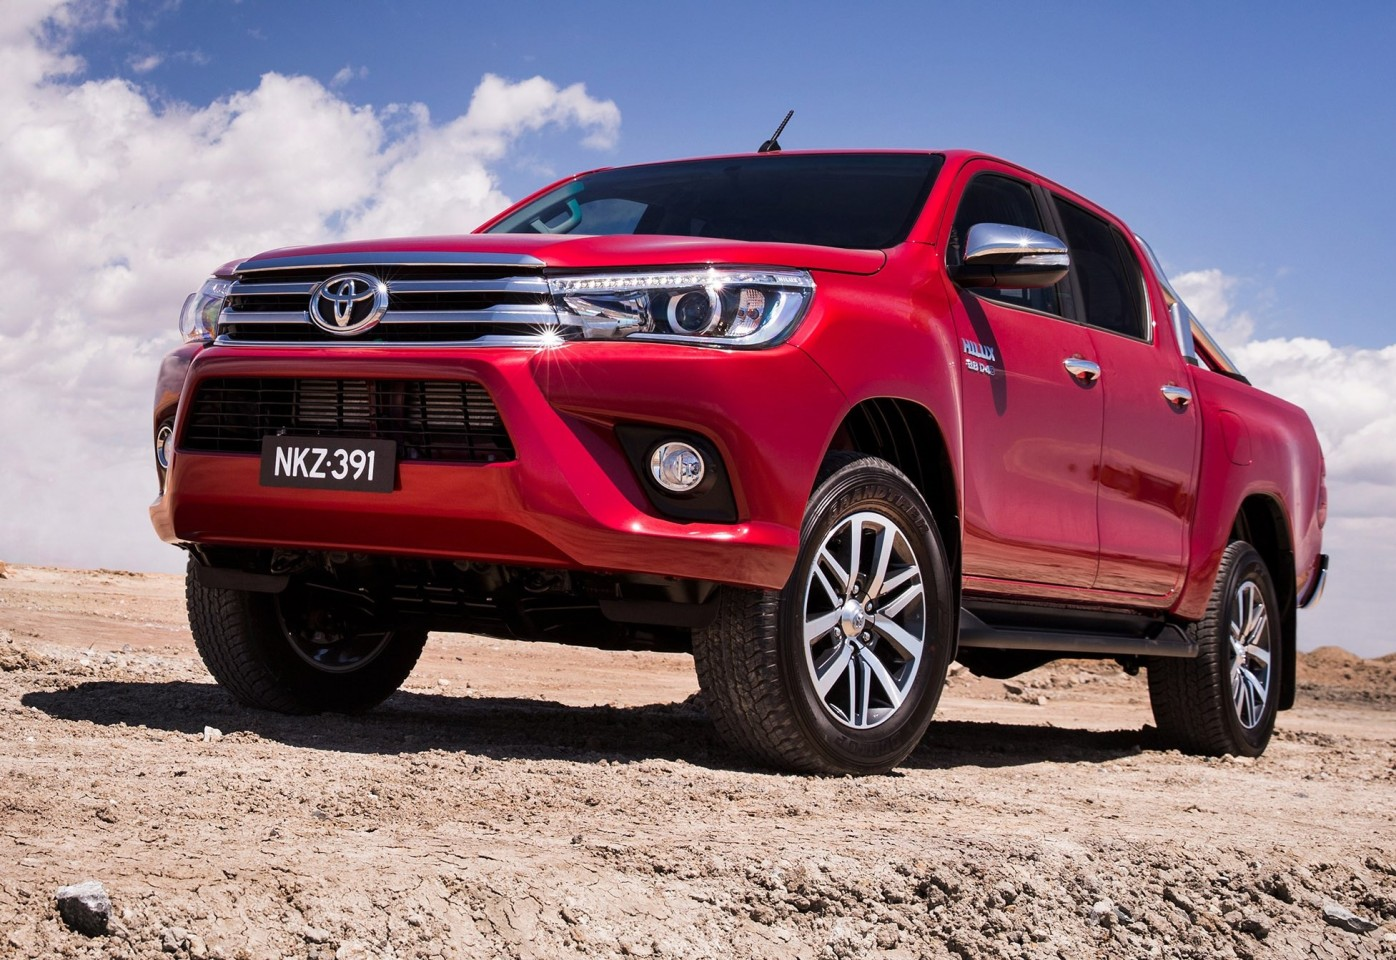 Toyota HiLux: Top Selling 4X4 In Australia